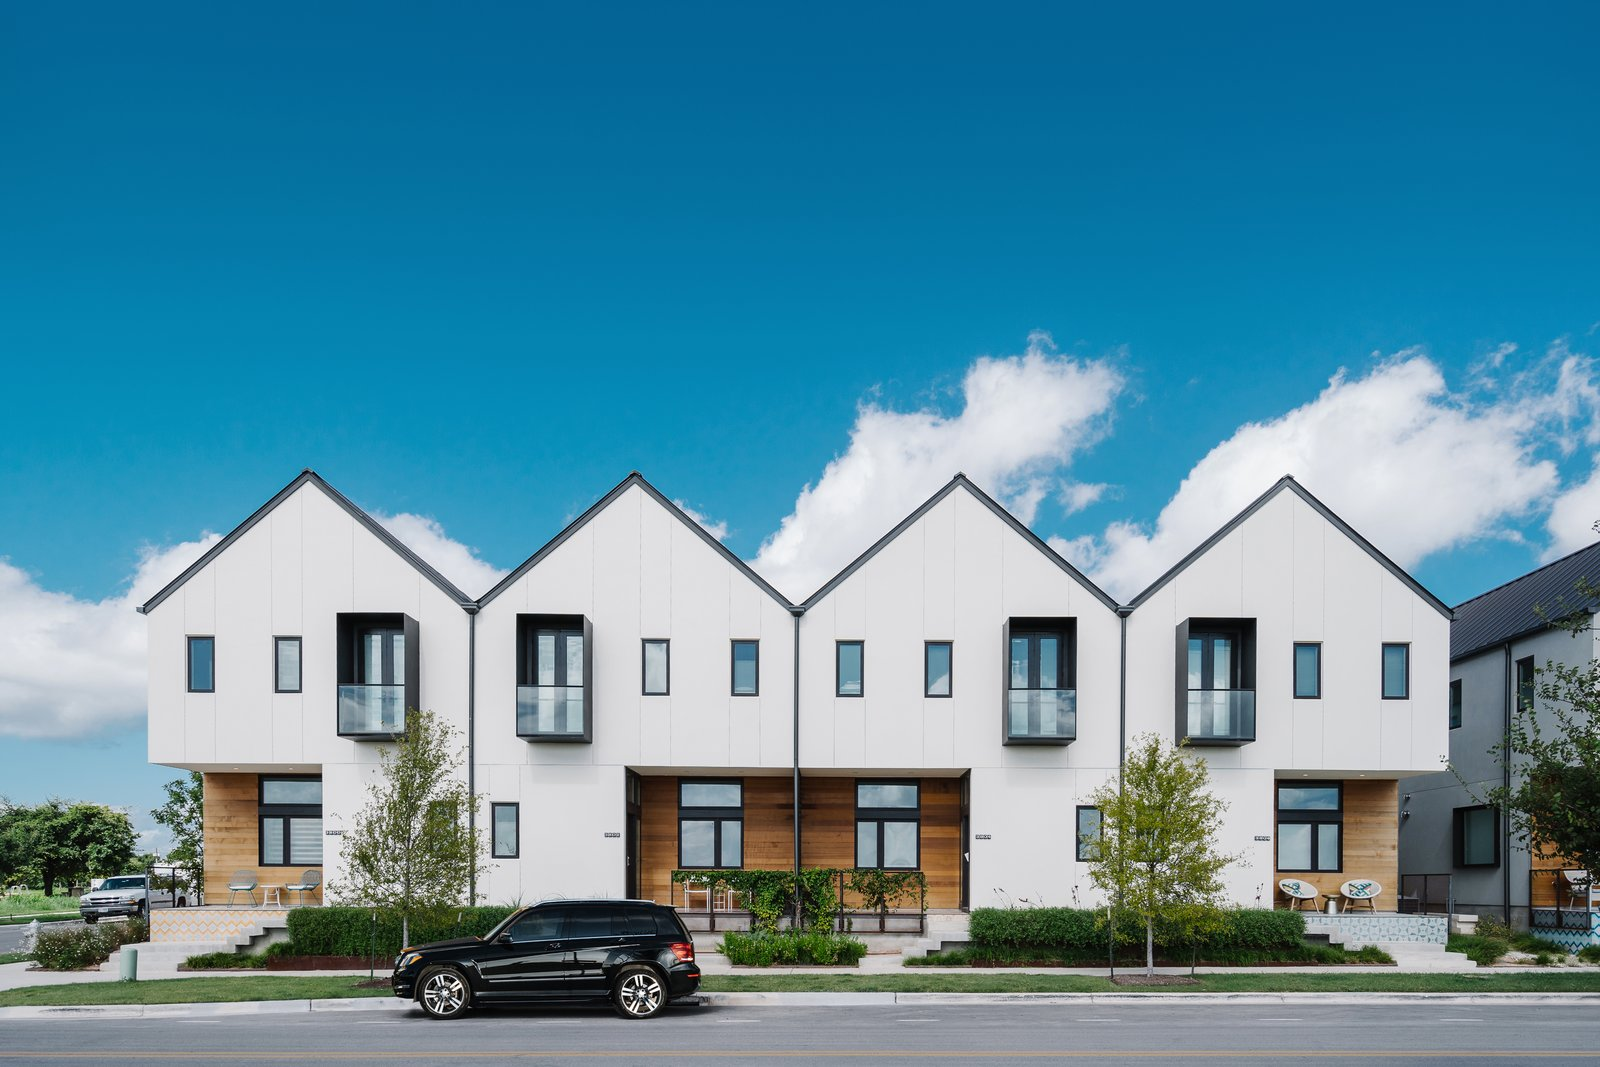 Photo 1 of 7 in Sustainability is the Centerpiece of This New Austin Development